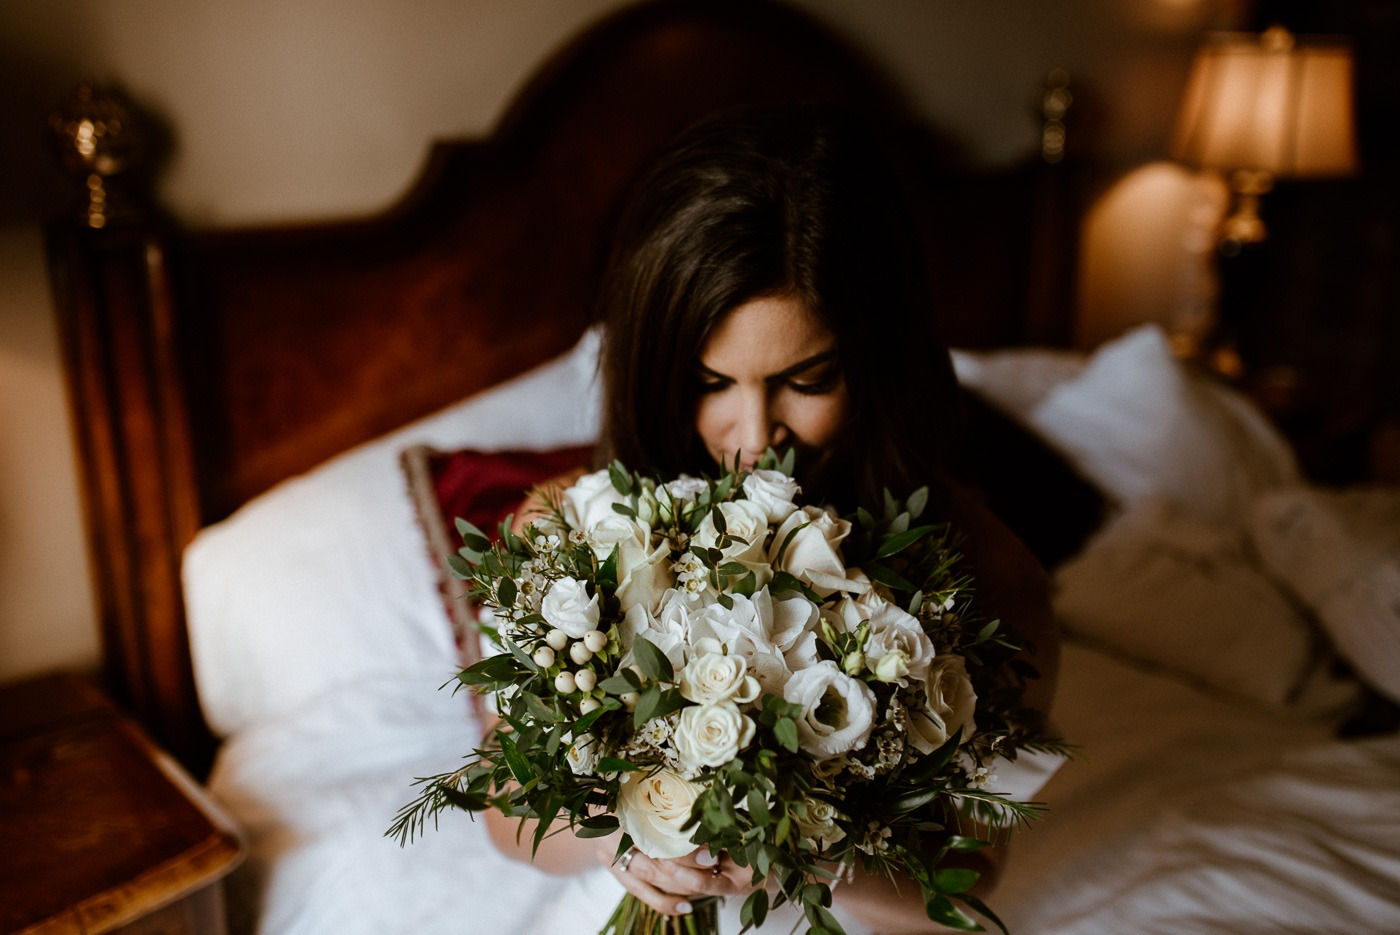 A person sitting at a table with a flower on a bed